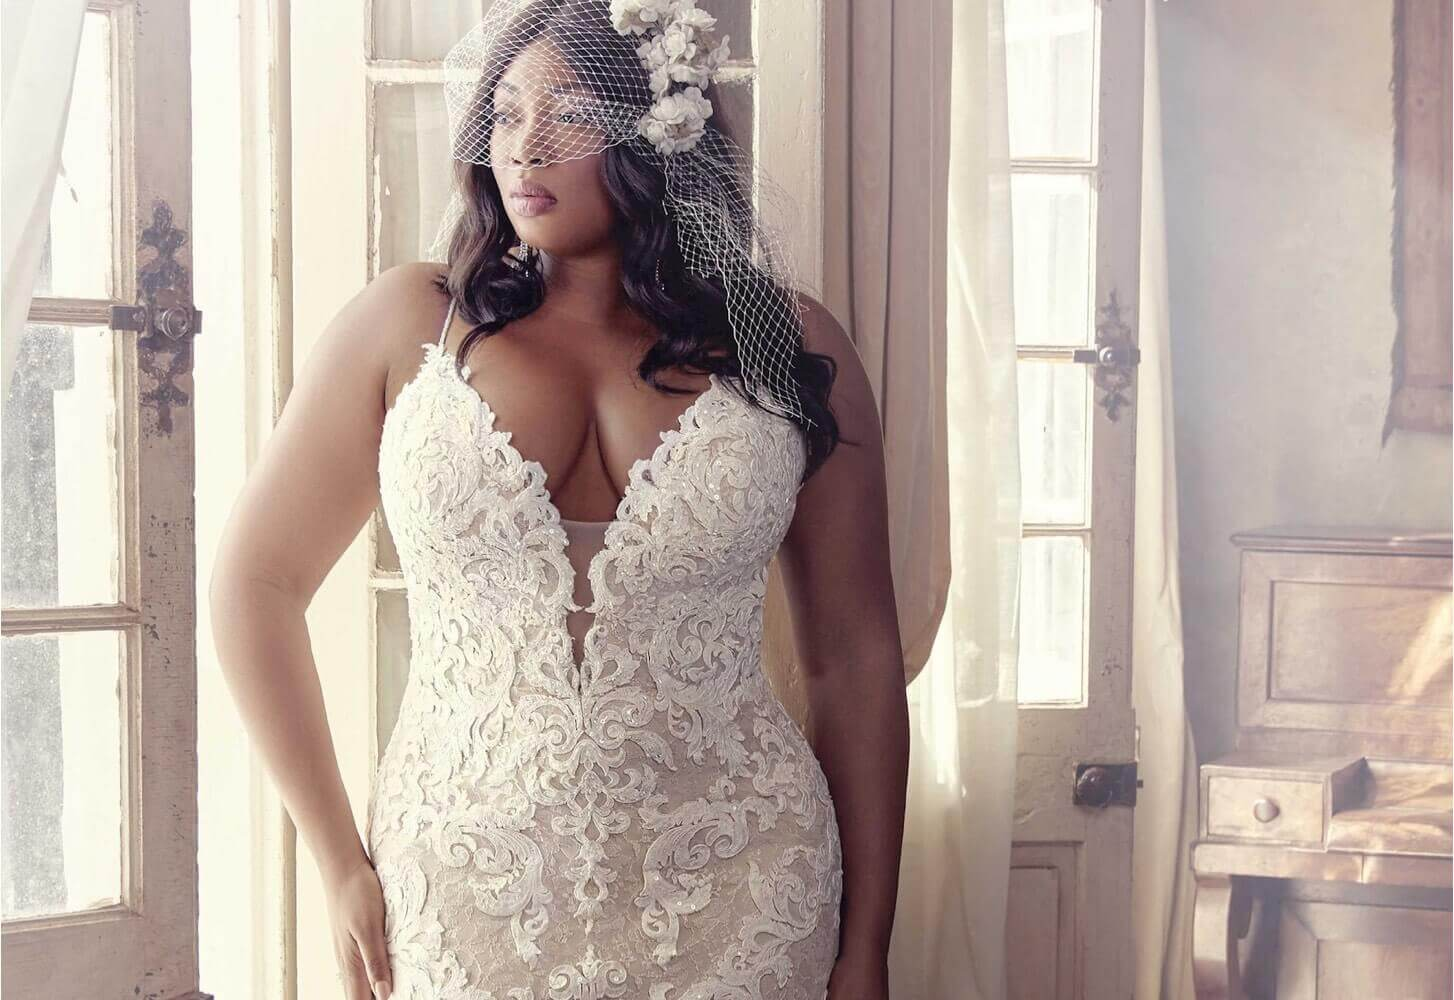 Plus size model wearing a white bridal gown